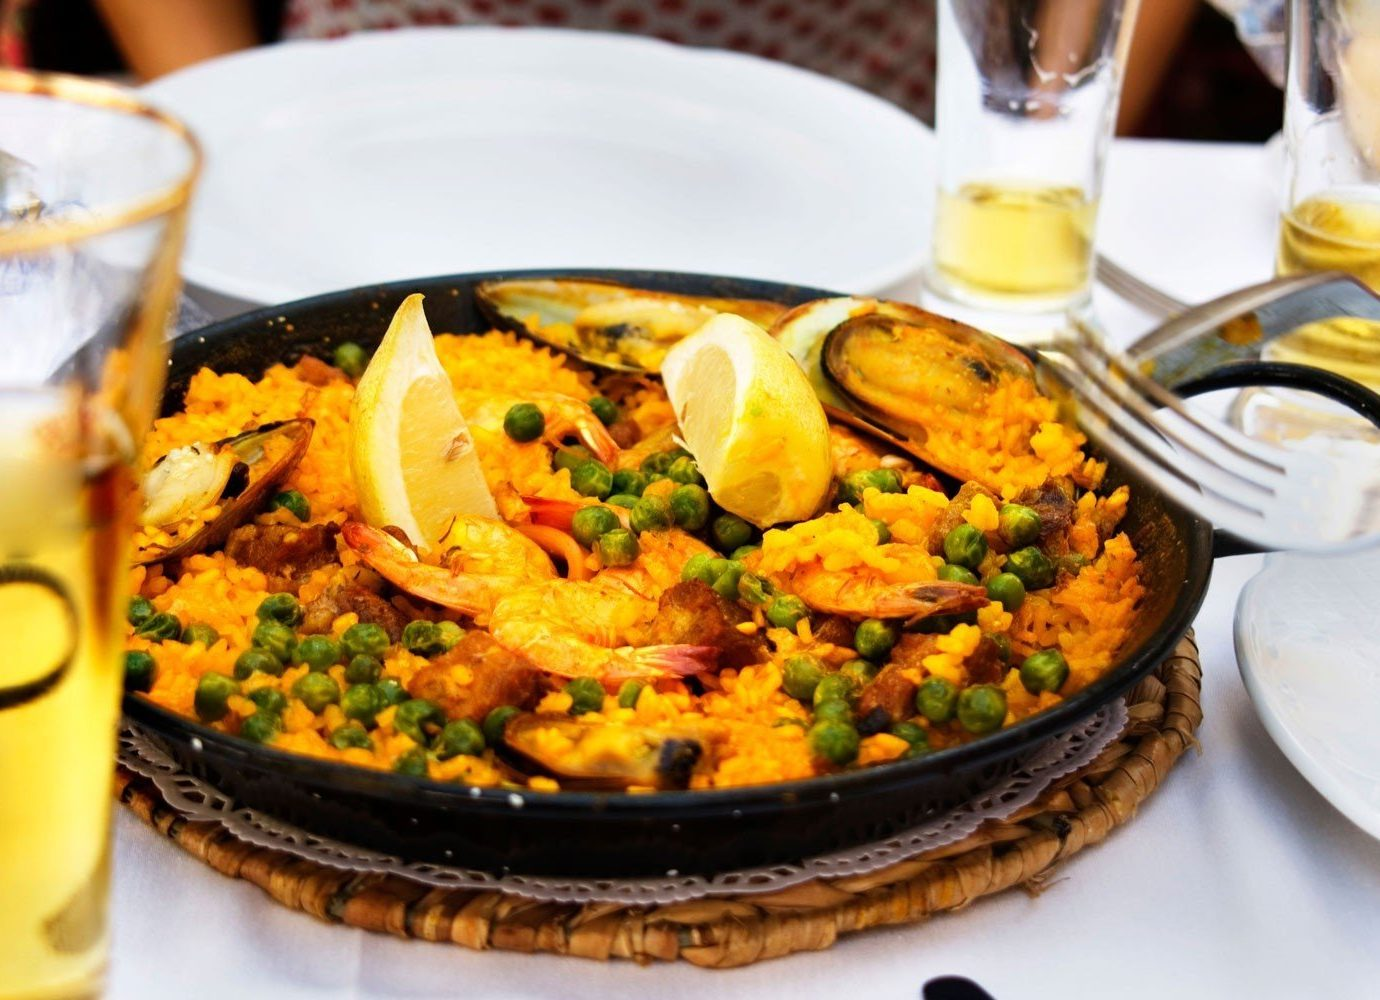 Trip Ideas table food plate cup dish meal cuisine breakfast paella produce supper Drink brunch restaurant mussel